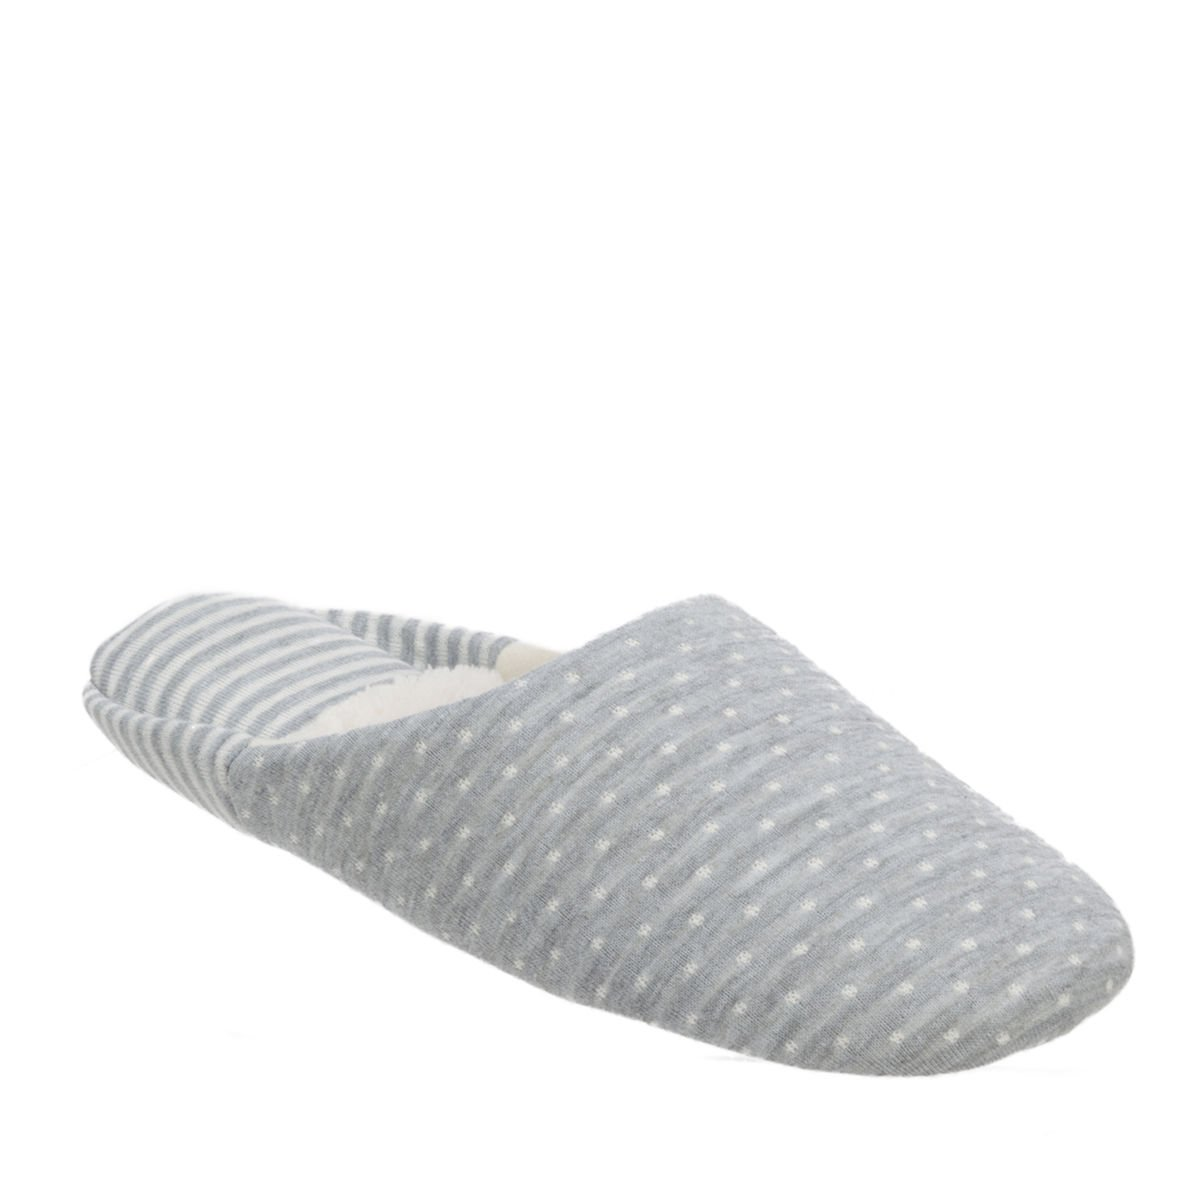 Dearfoams Womens MEMORYFOAM Gray Mixed Print Scuff Slipper - Medium (7-8)